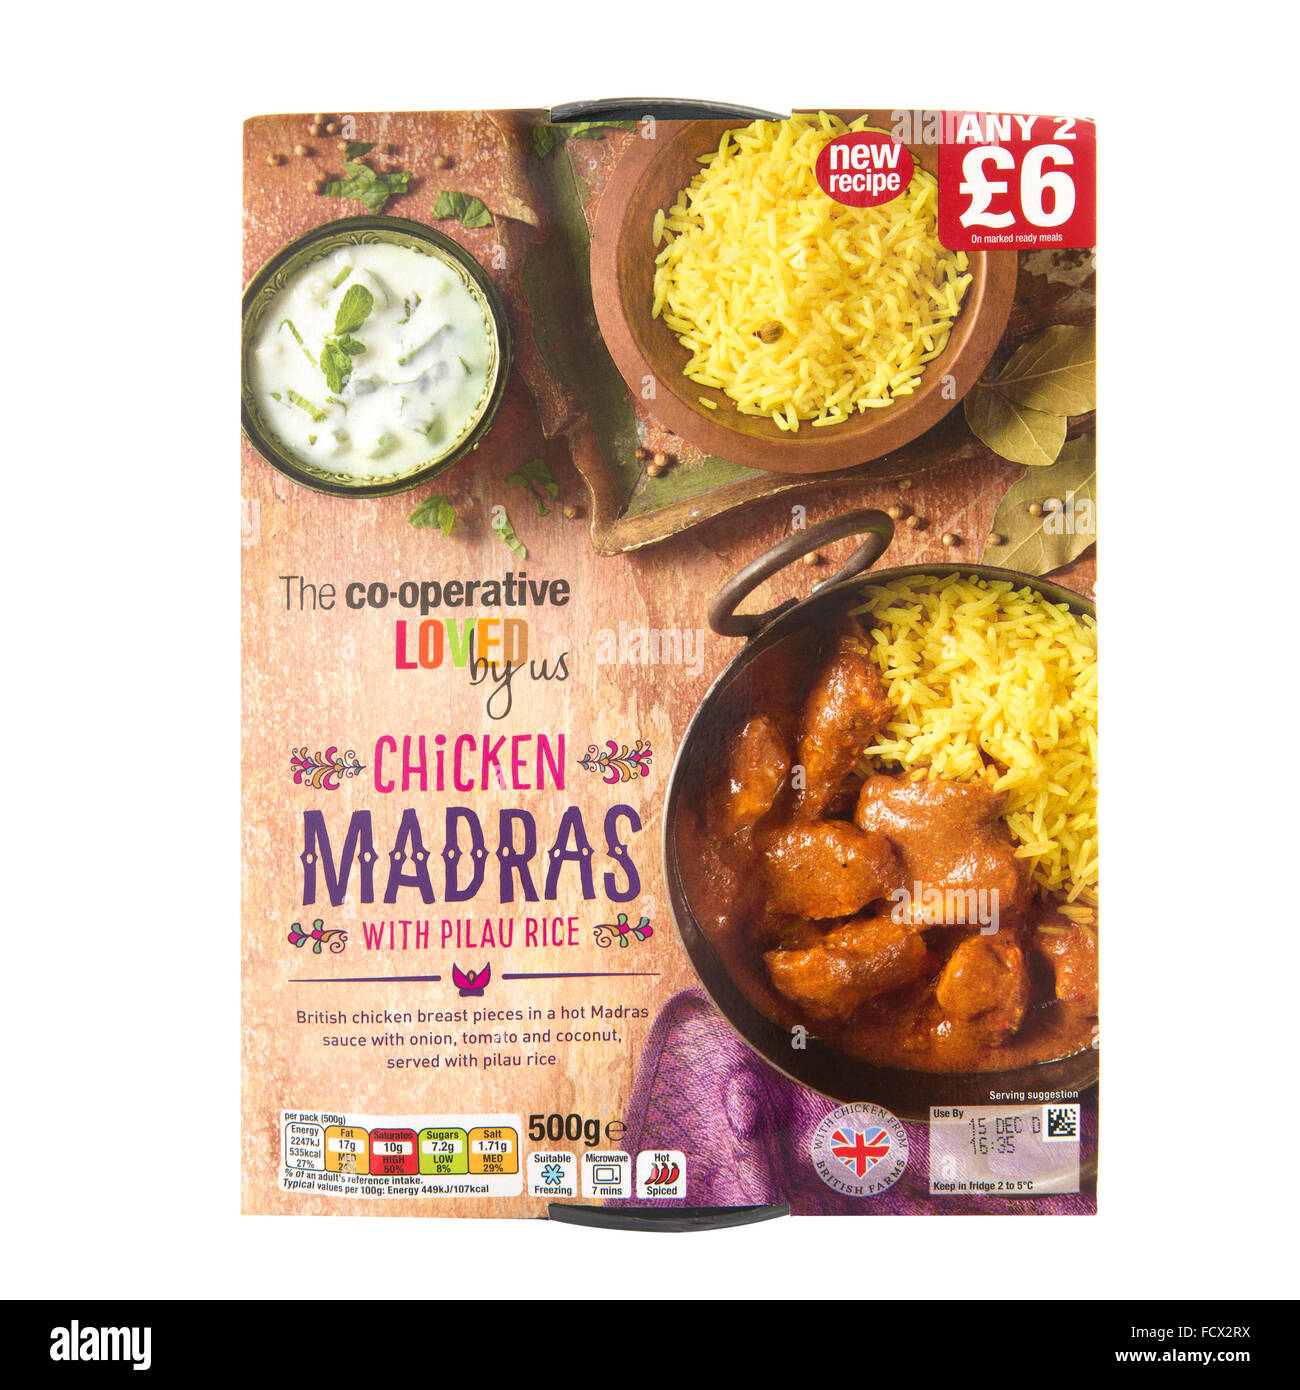 Chicken Madras Curry With Pilau Rice on a White Background - Stock Image